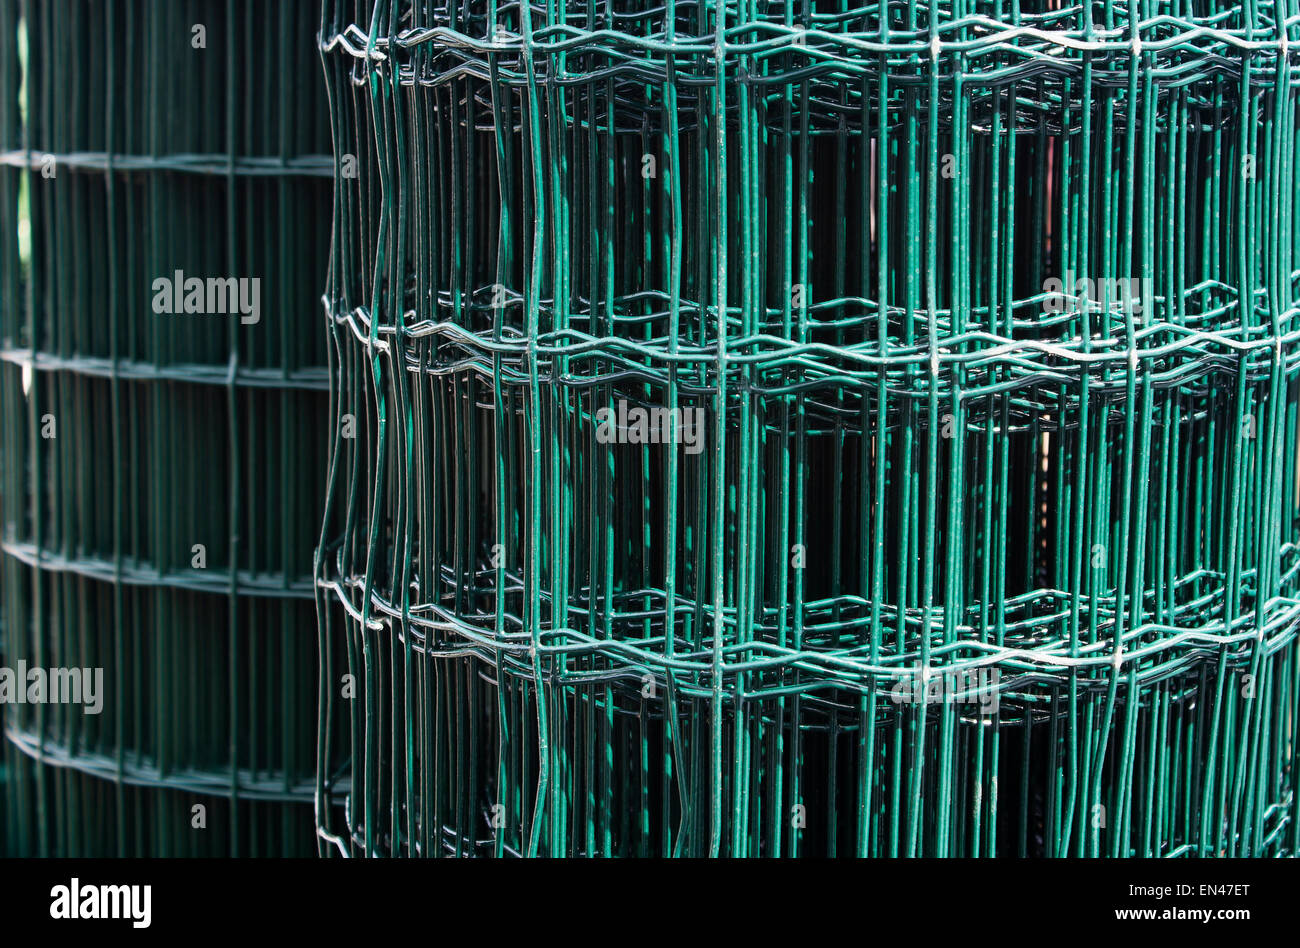 roll of metal wire mesh closeup Stock Photo: 81842960 - Alamy